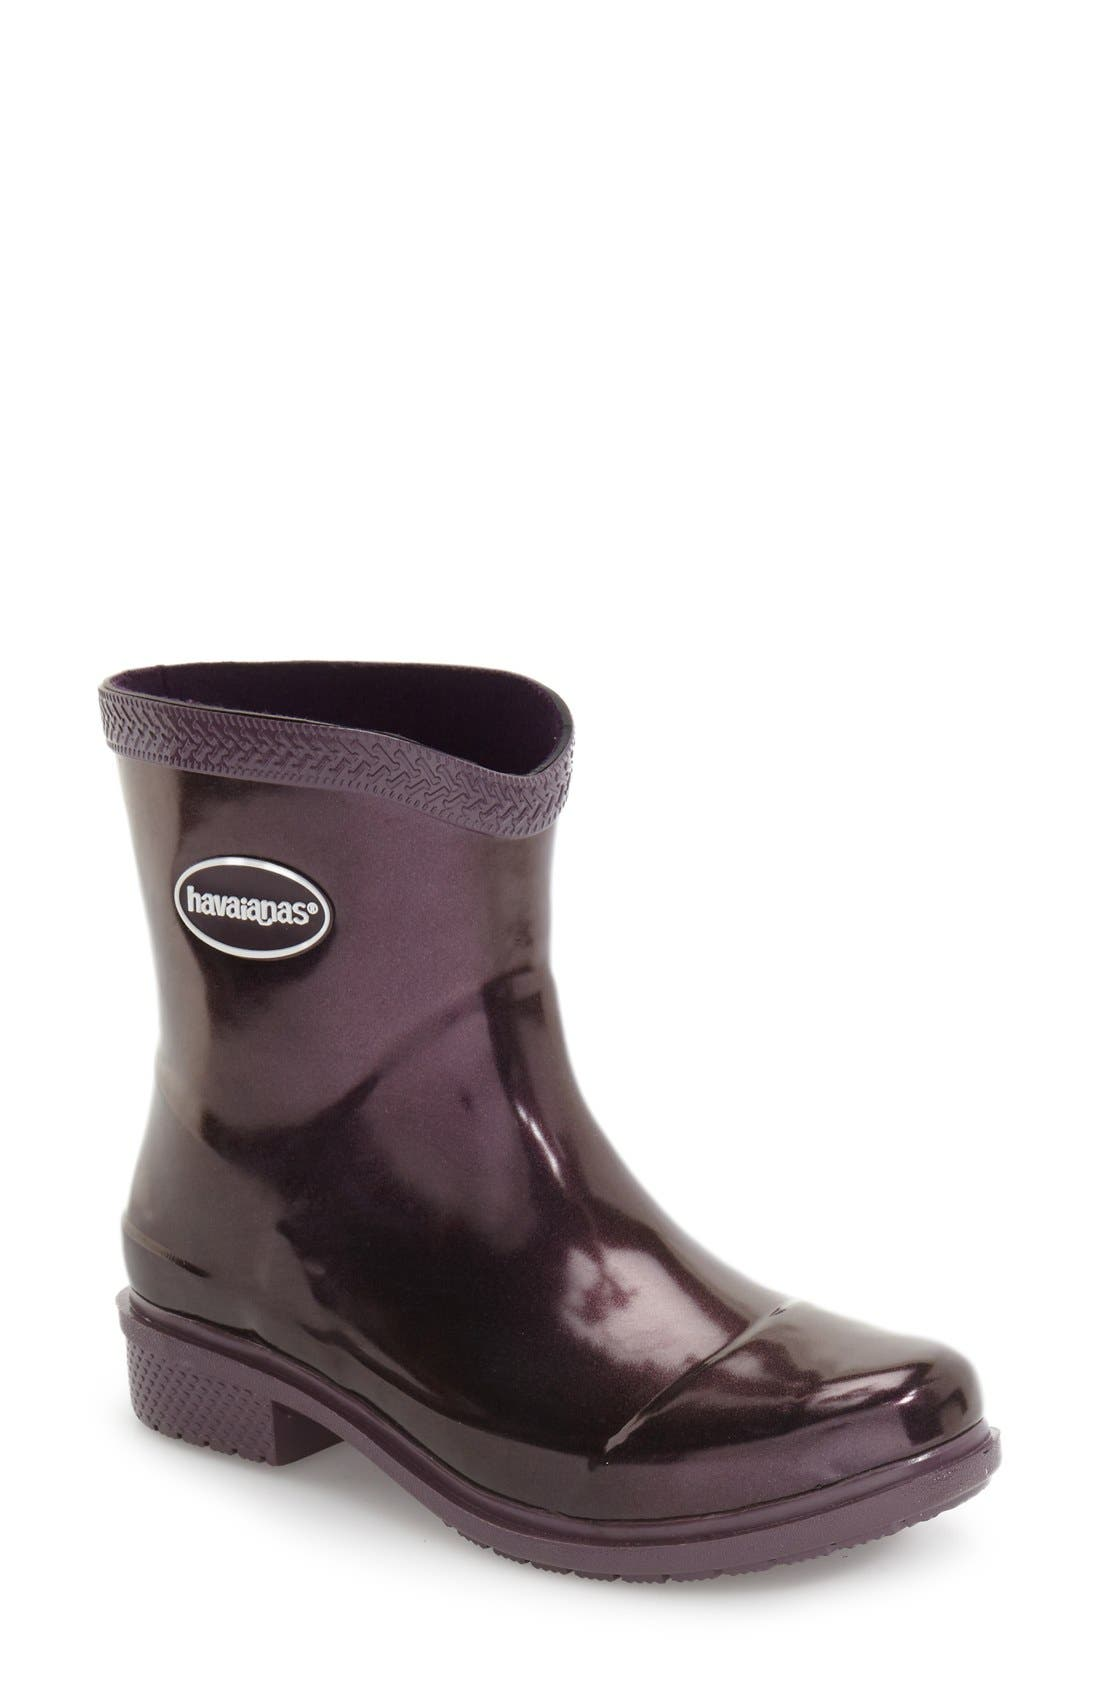 Alternate Image 1 Selected - Havaianas 'Galochas Low Metallic' Waterproof Rain Boot (Women)